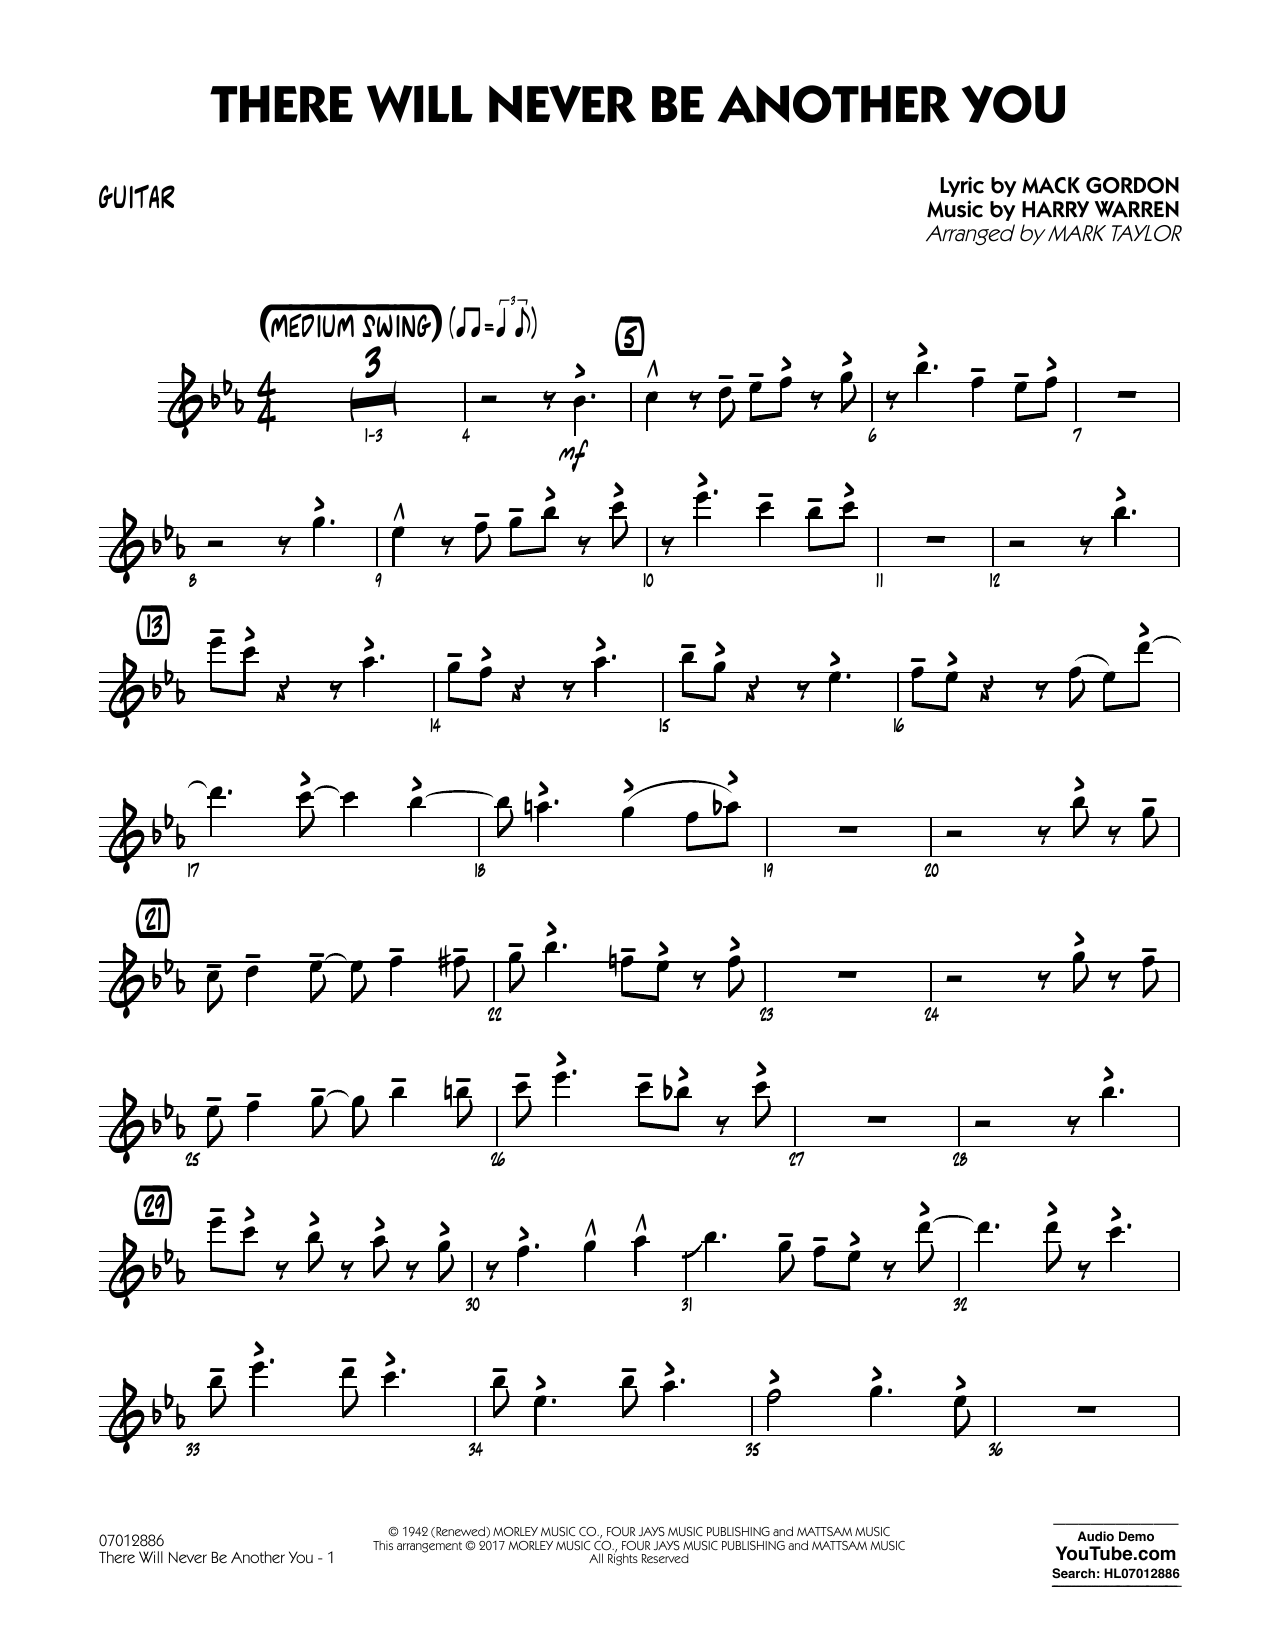 There Will Never Be Another You - Guitar Sheet Music